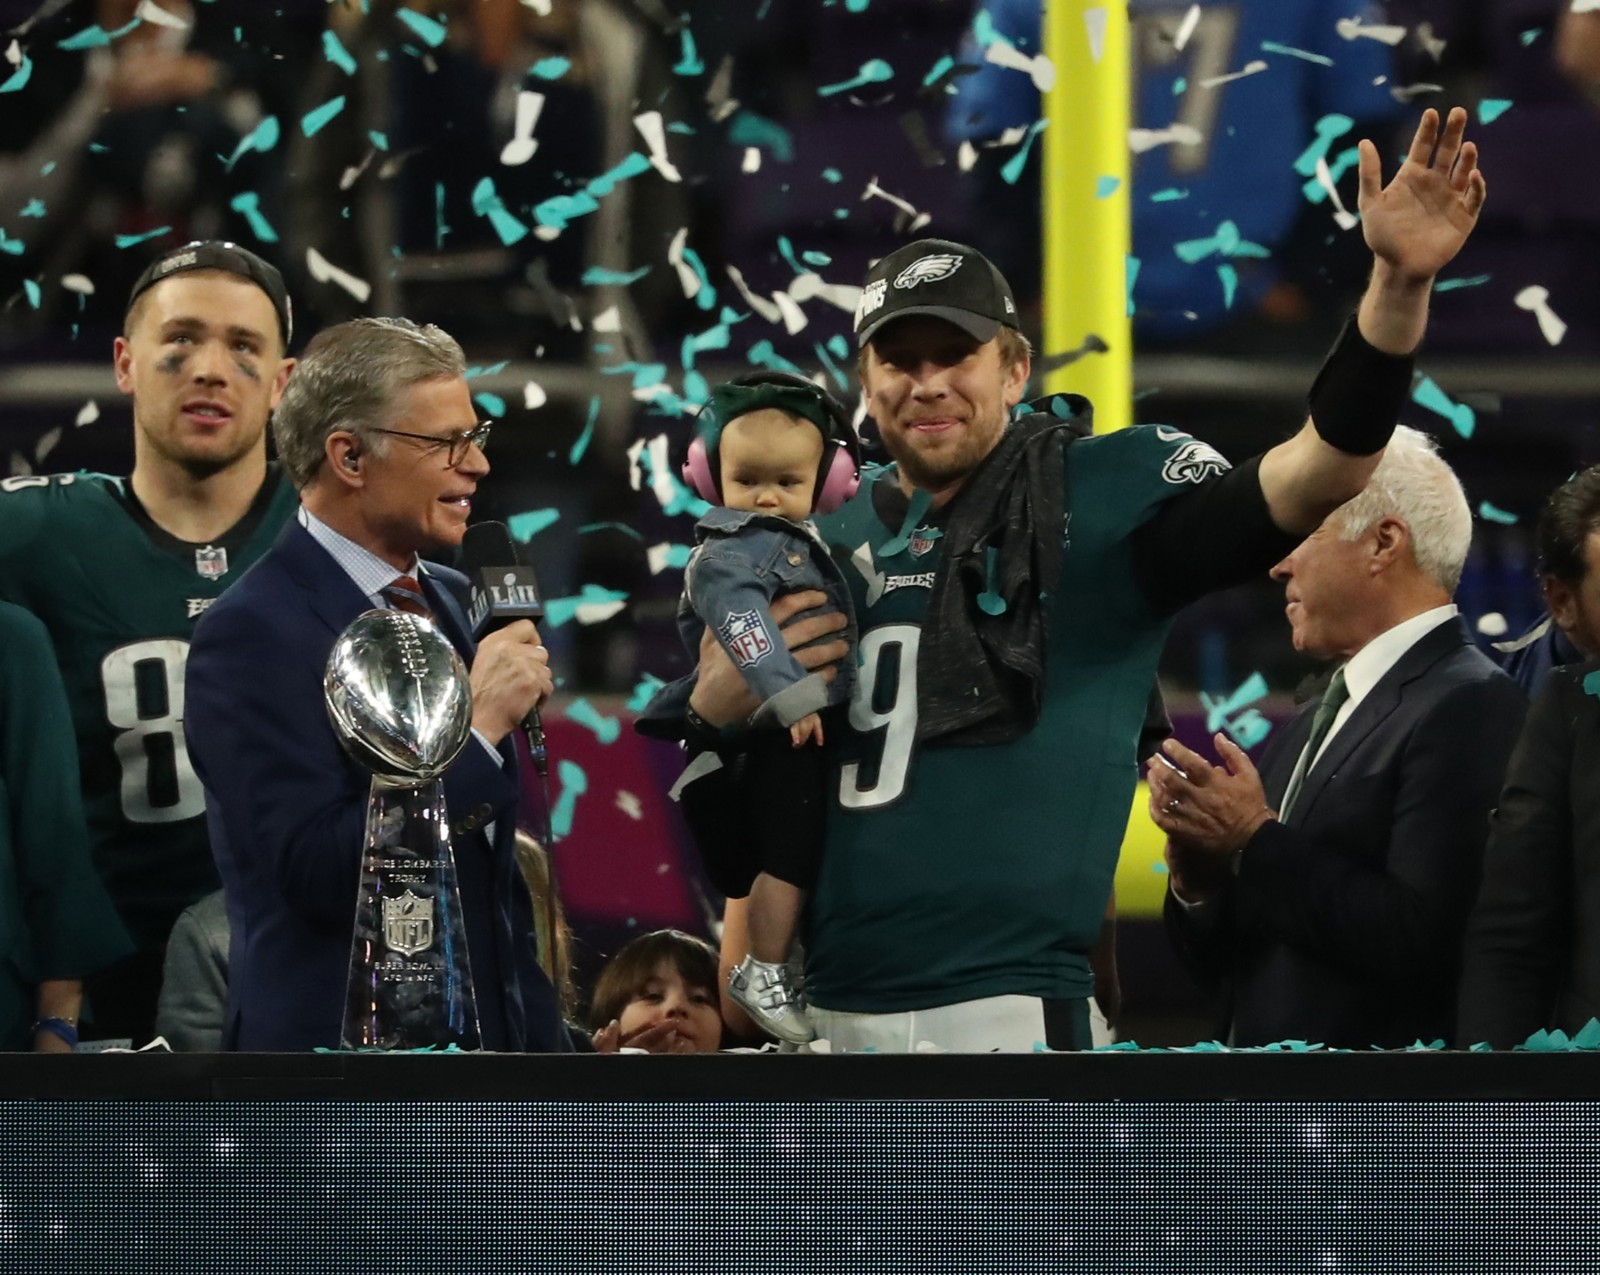 Security Tight in Philadelphia as Victory Parade Celebrates Super Bowl Champion Eagles